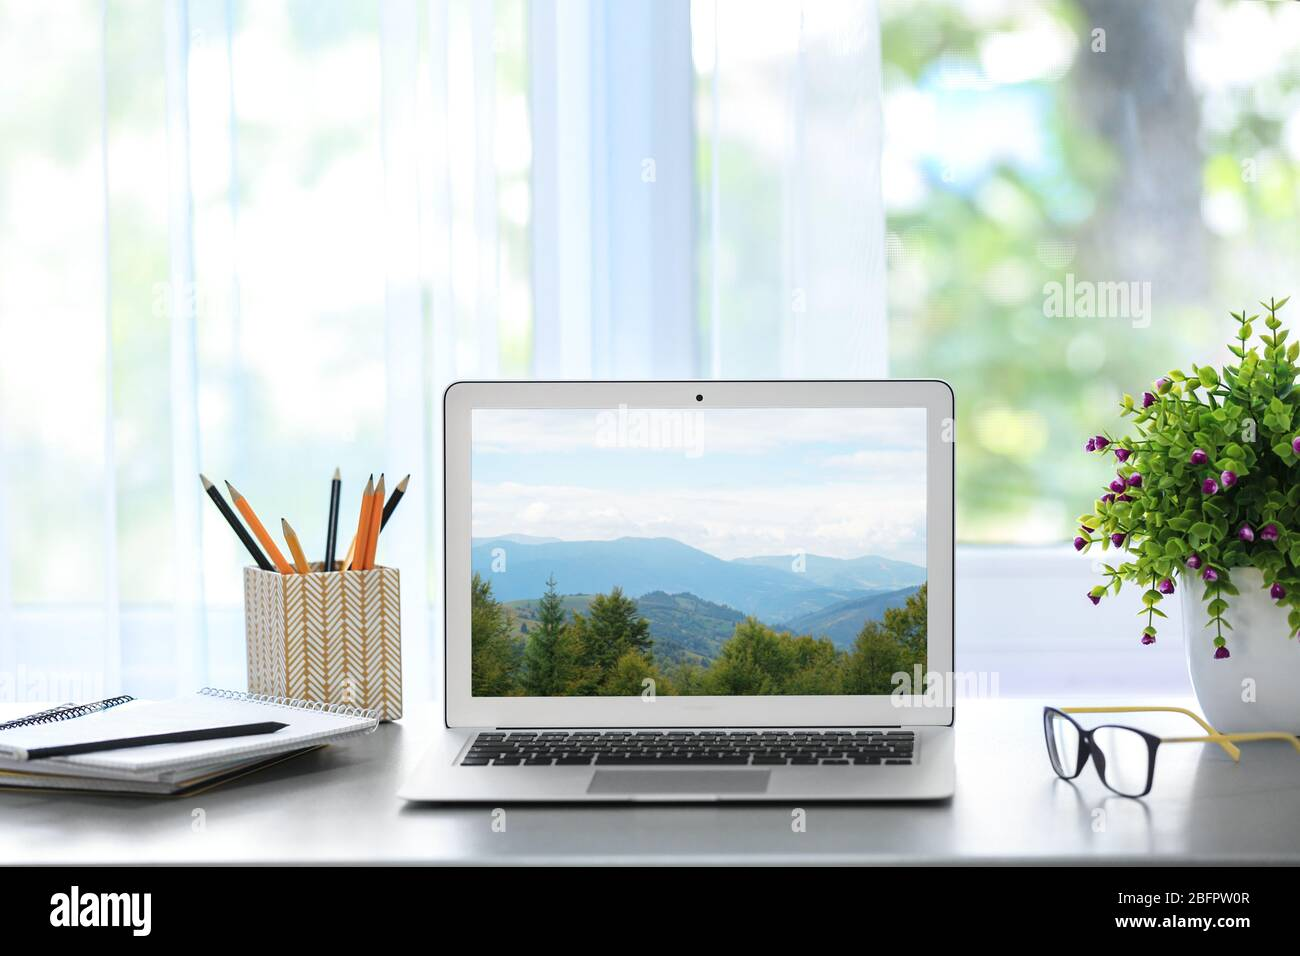 Workplace With Laptop And Wallpaper Of Landscape On Screen Stock Photo Alamy